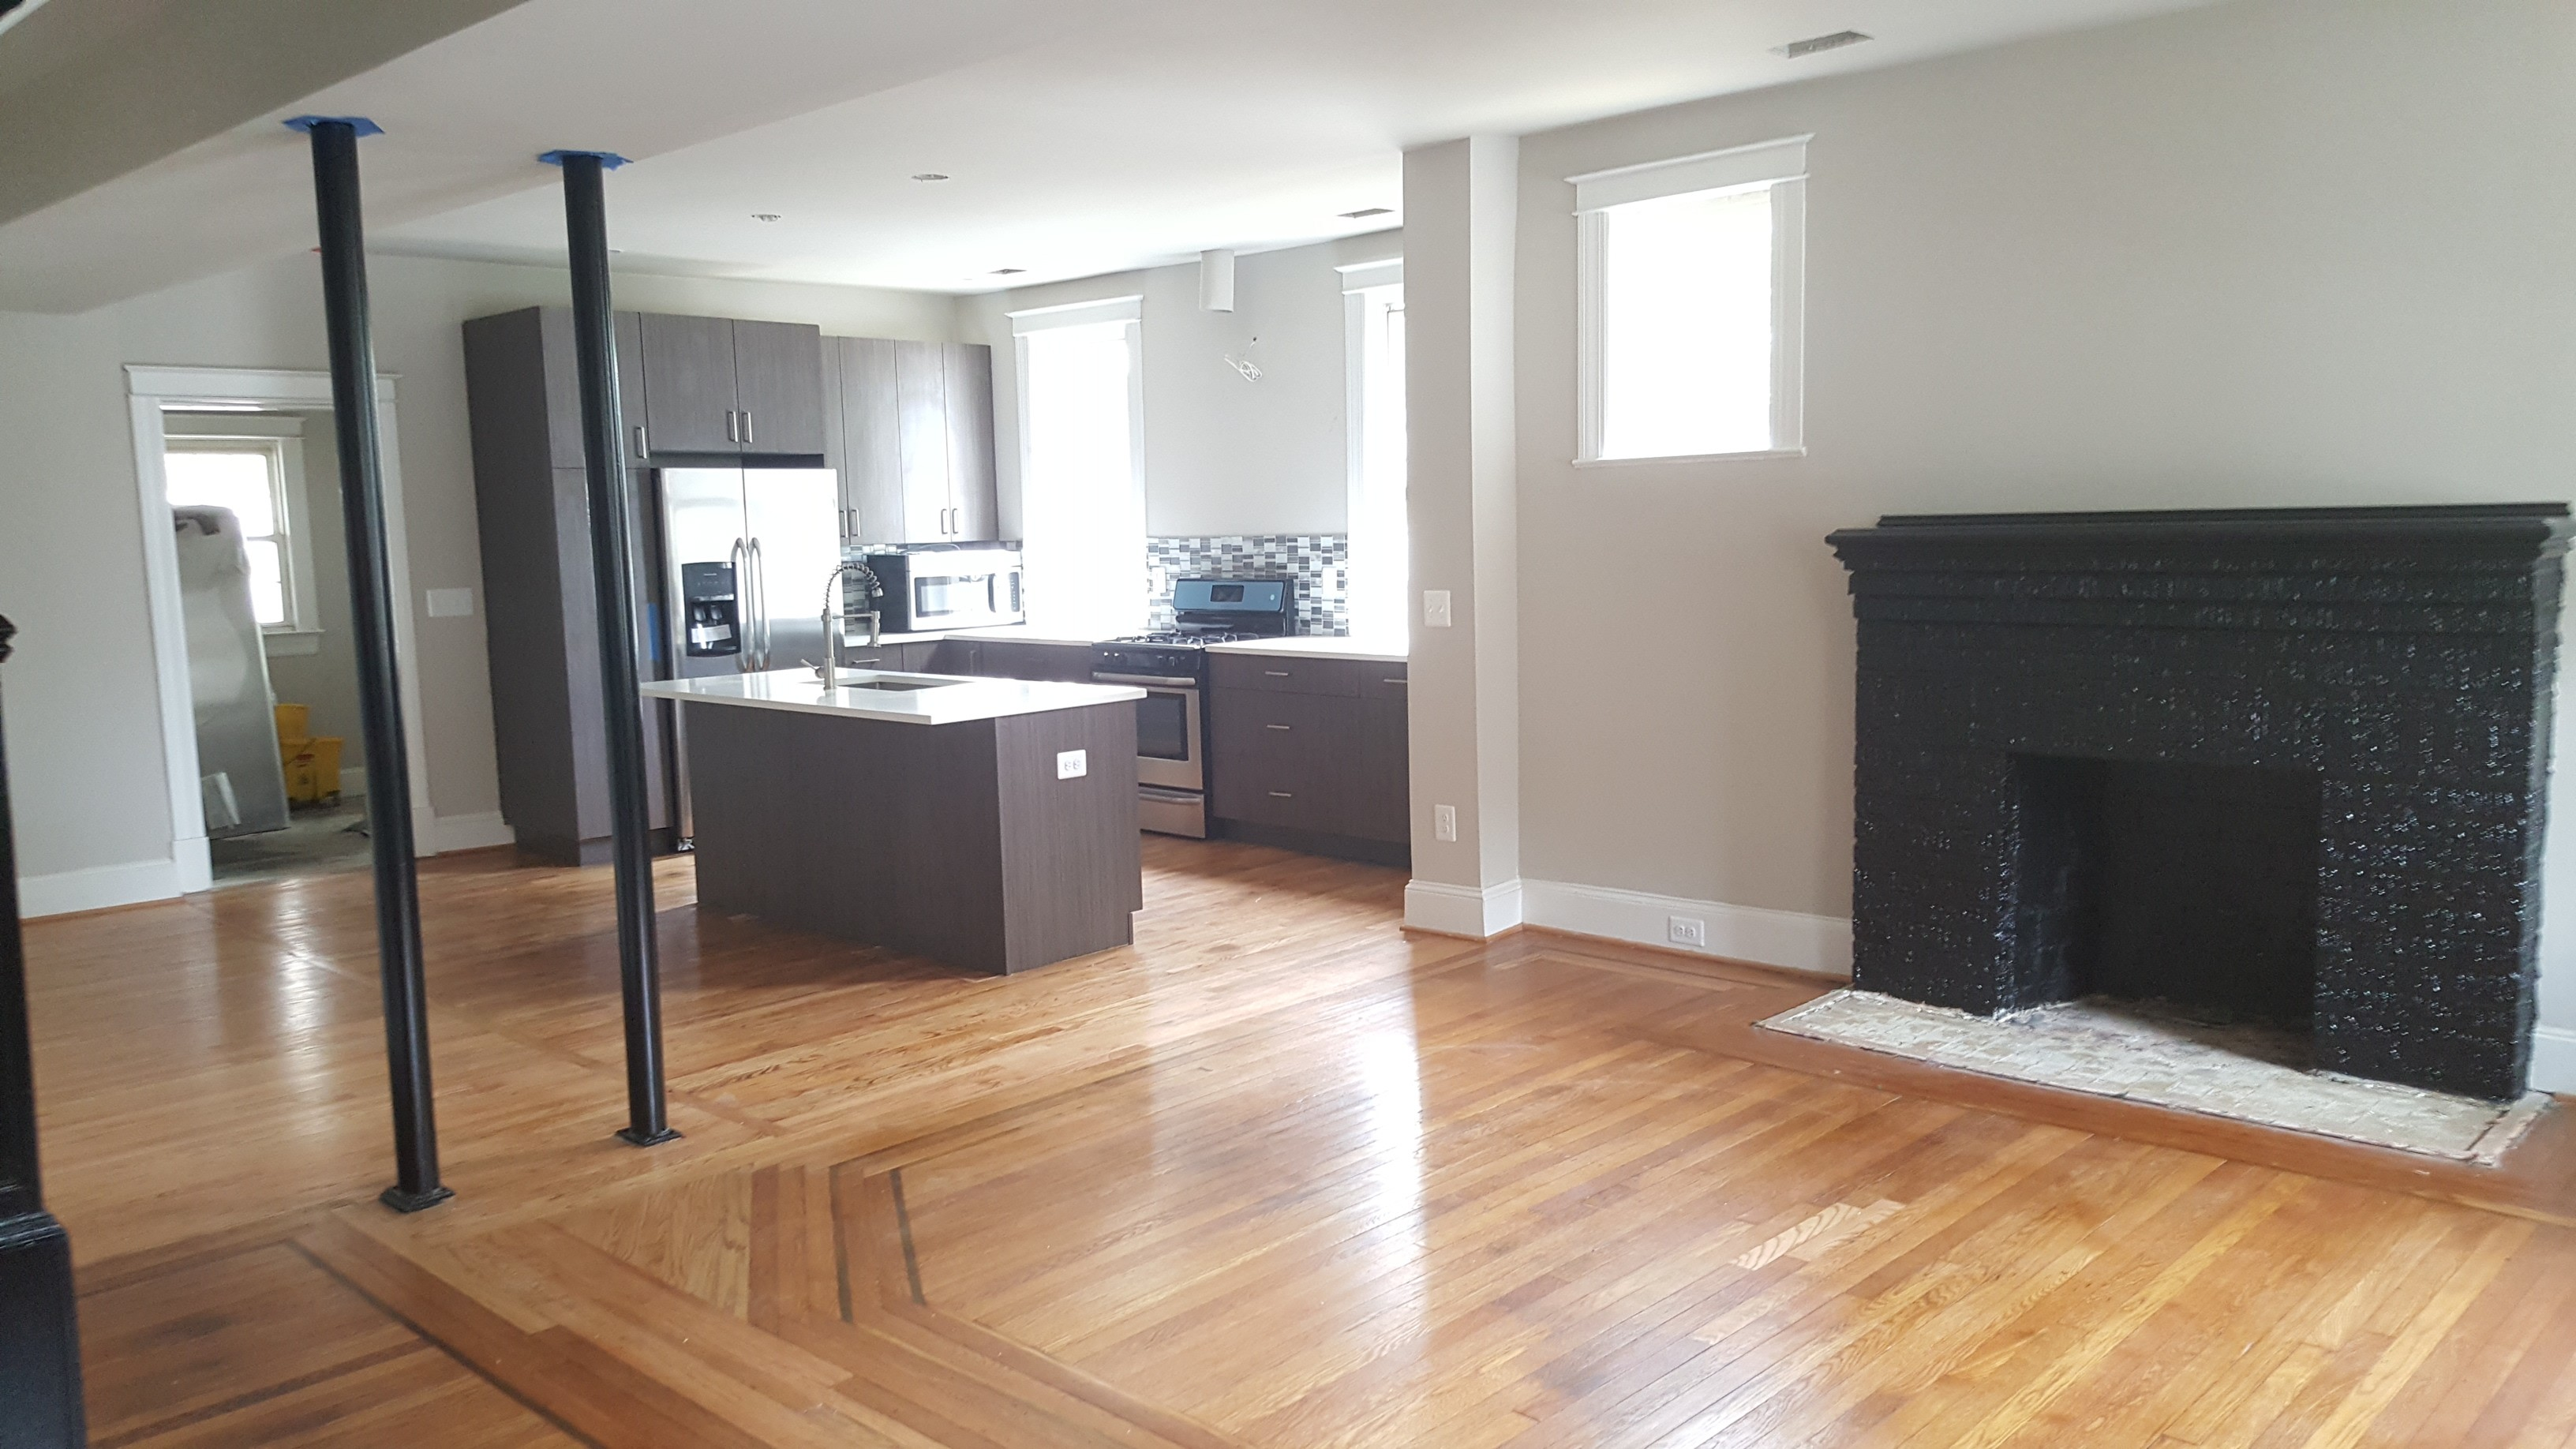 201 Rhode Island Avenue Northeast Washington Dc 20002 4 Bedroom Apartment For Rent For 3 800